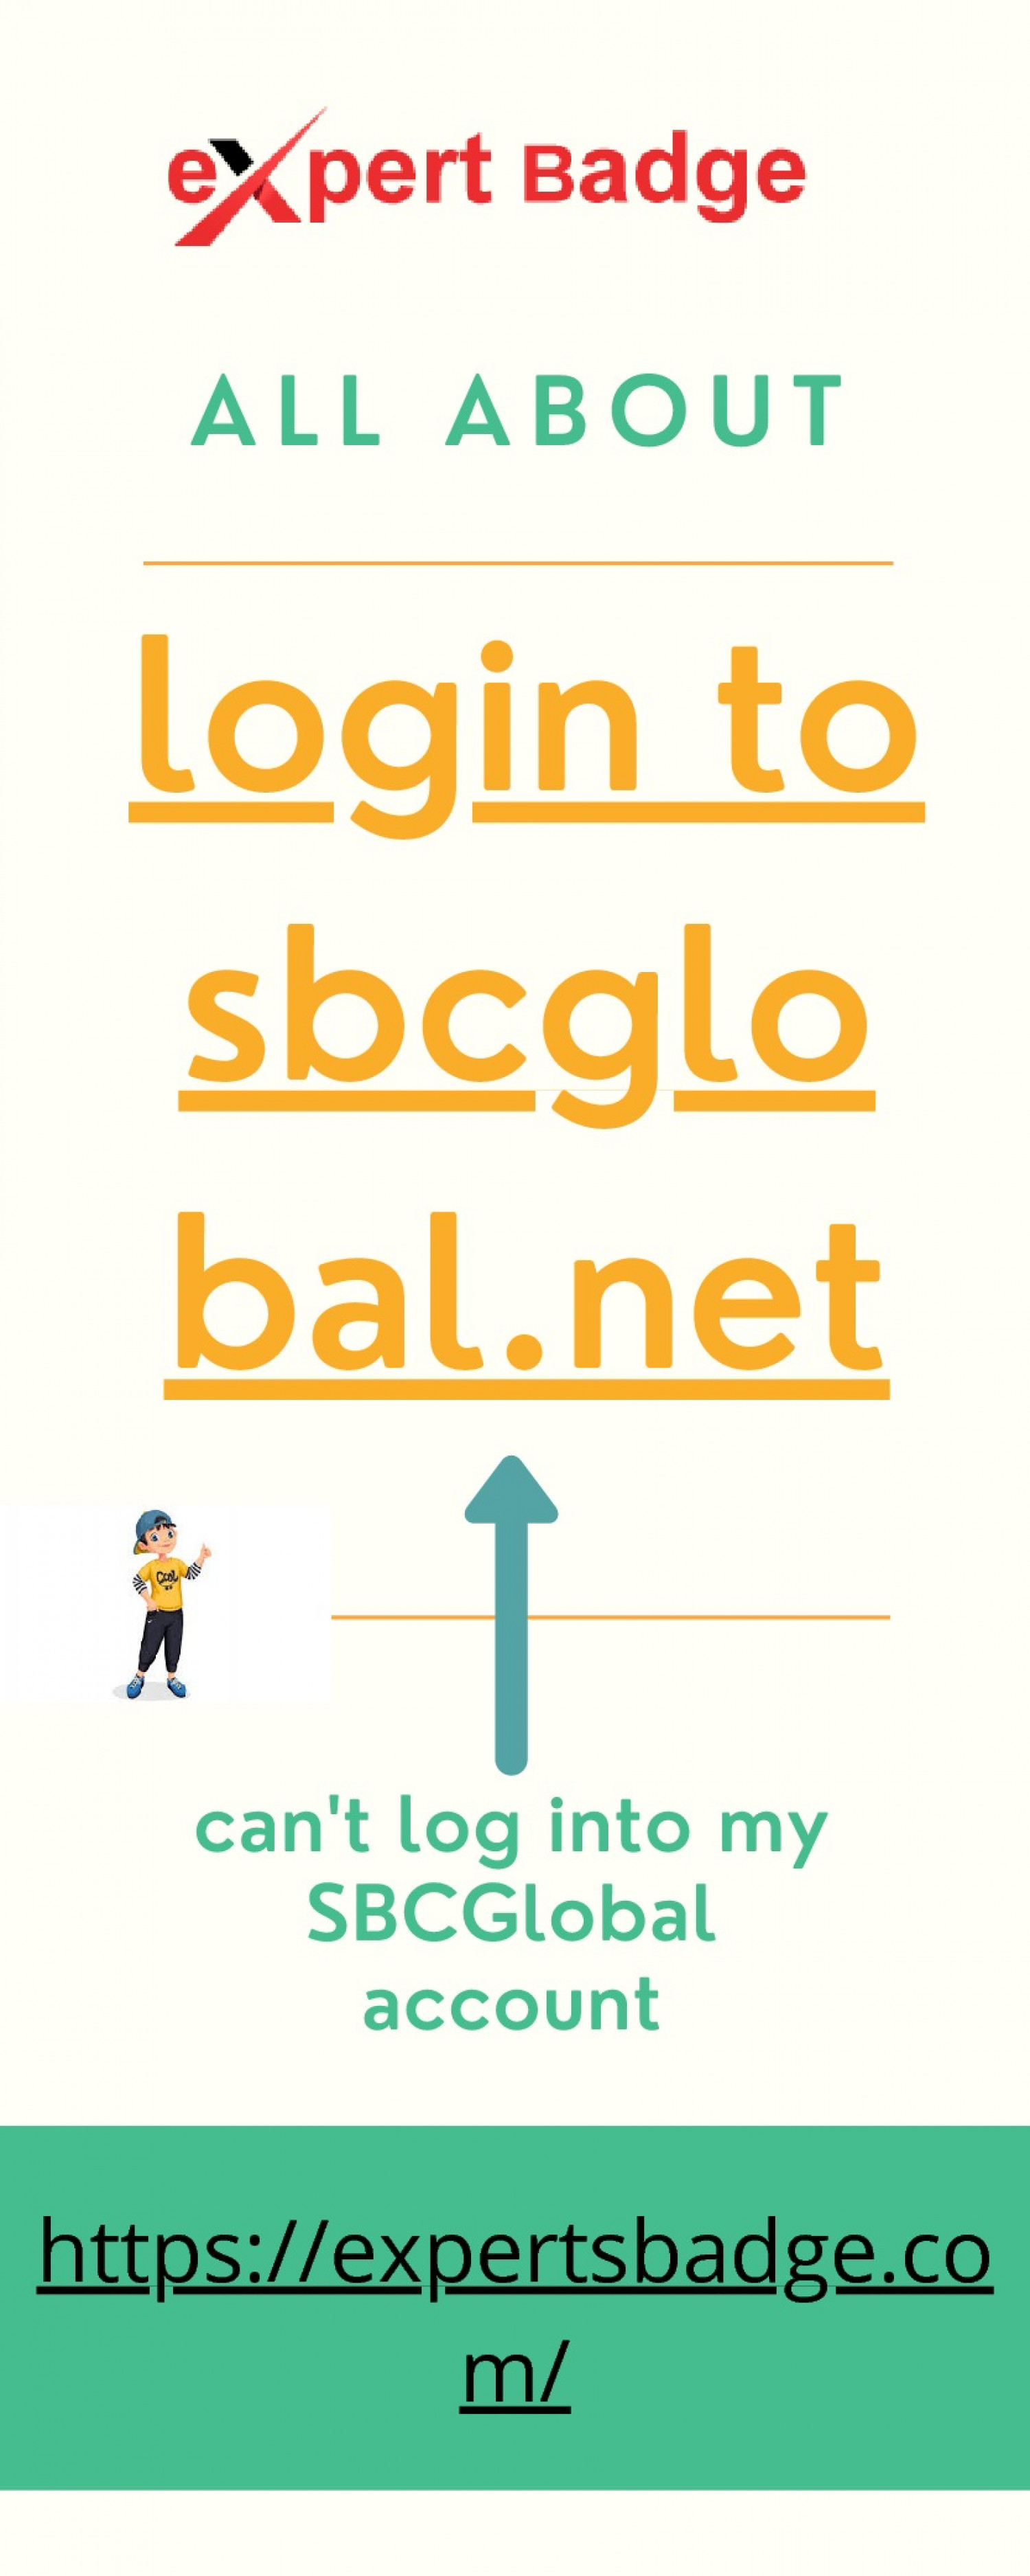 Why can't log into my SBCGlobal account? Infographic